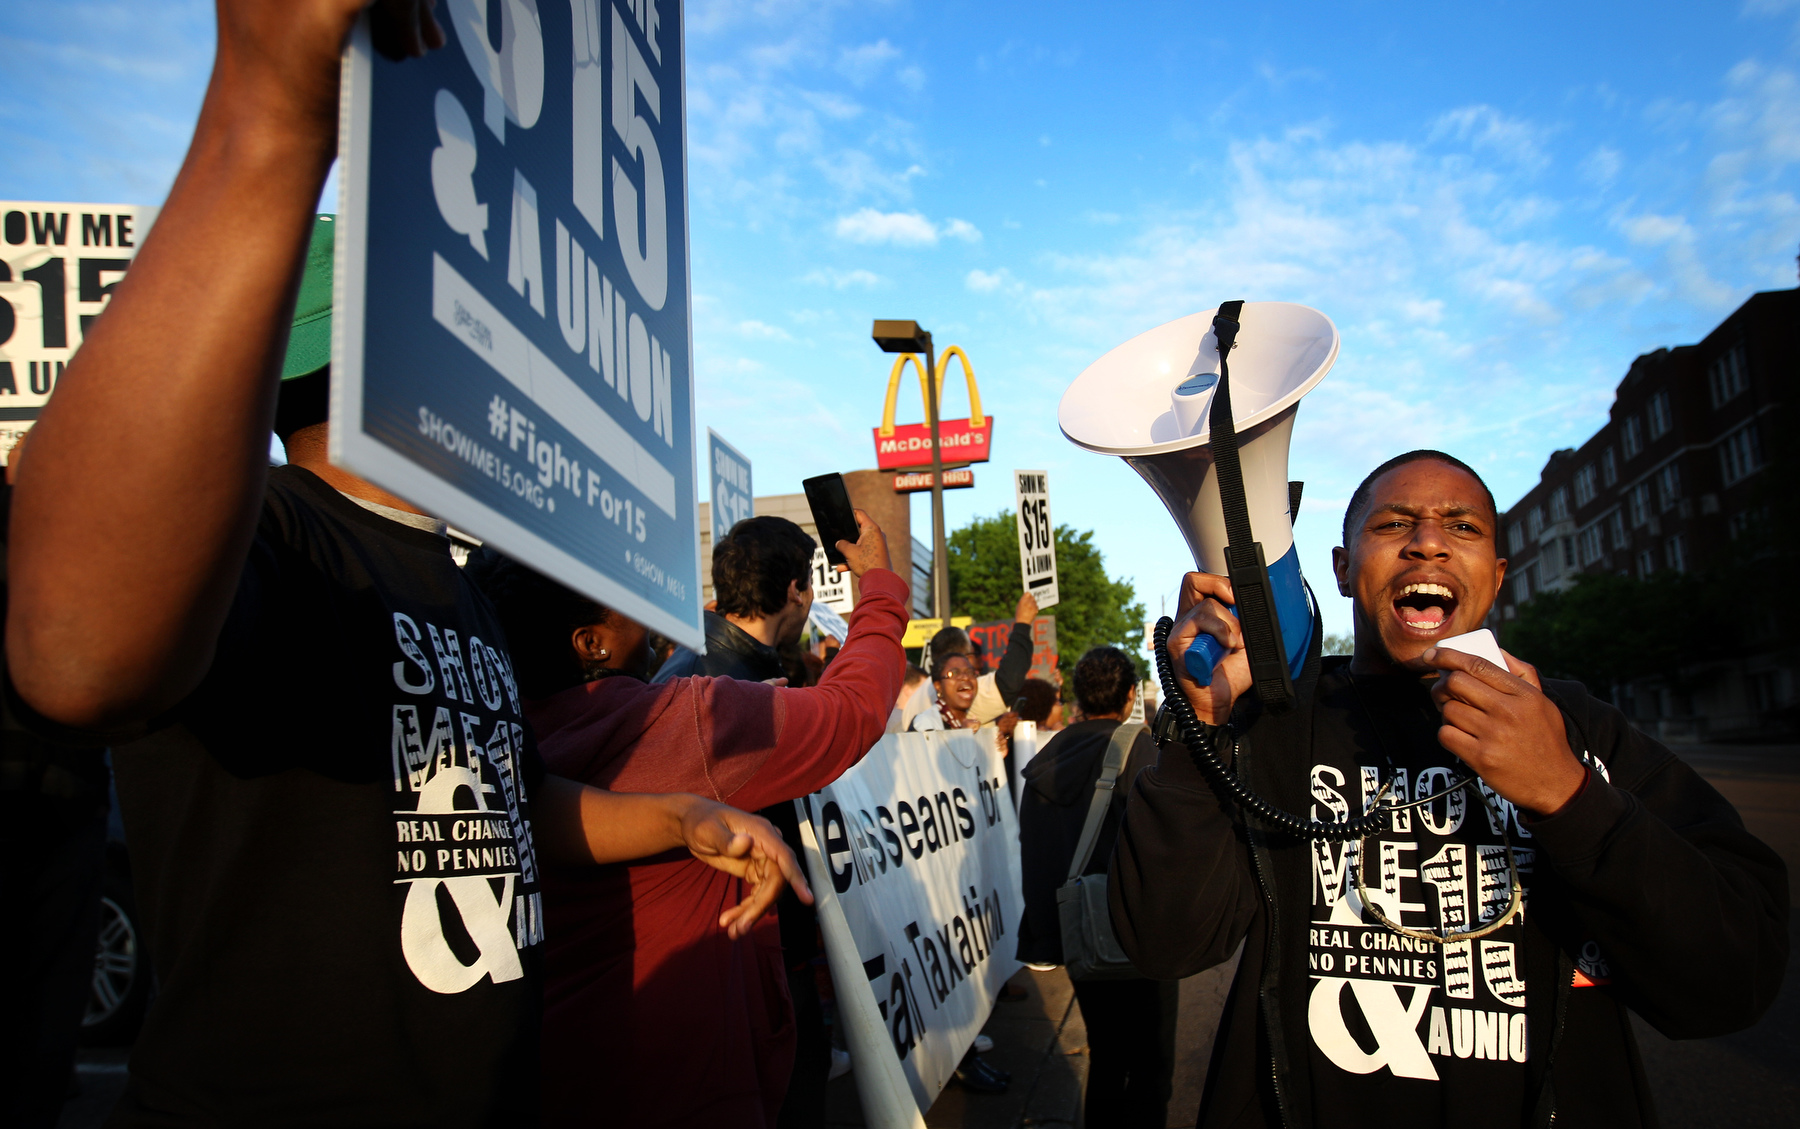 April 14, 2016 - Christopher Smith (right) leads chants during a protest outside the McDonald's on Union seeking higher wages for fast food workers. Some of the roughly 60 protesters gathered stormed the restaurant and chanted by the registers before briefly blocking traffic on Union. (Mike Brown/The Commercial Appeal)